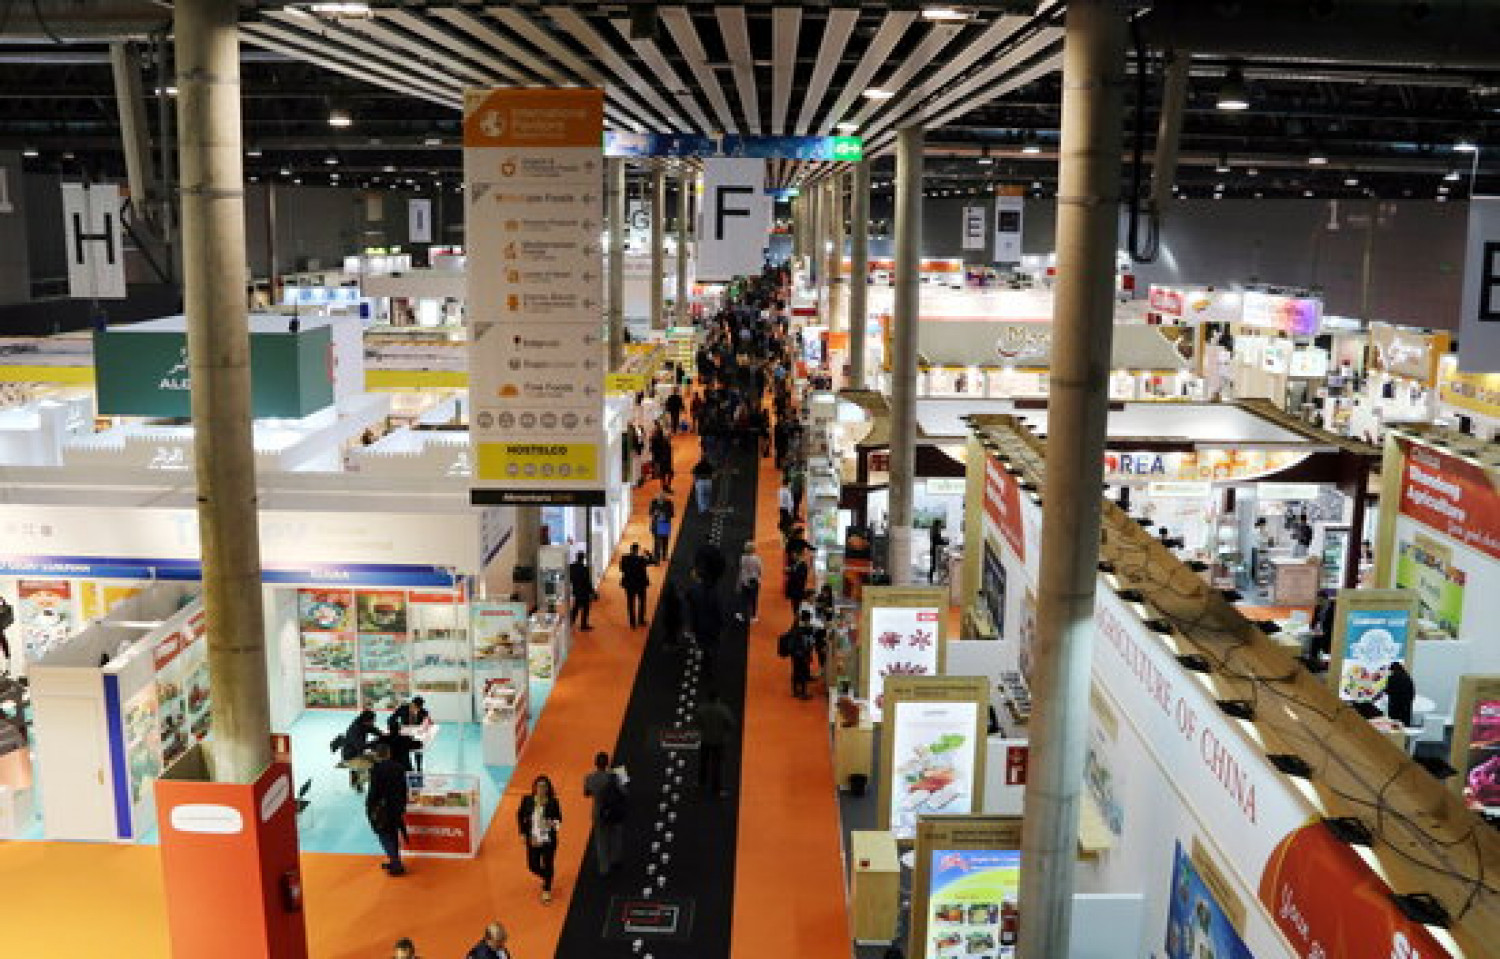 A general view of the 2018 edition of the Alimentaria trade fair, held at Fira Barcelona (by Àlex Recolons)